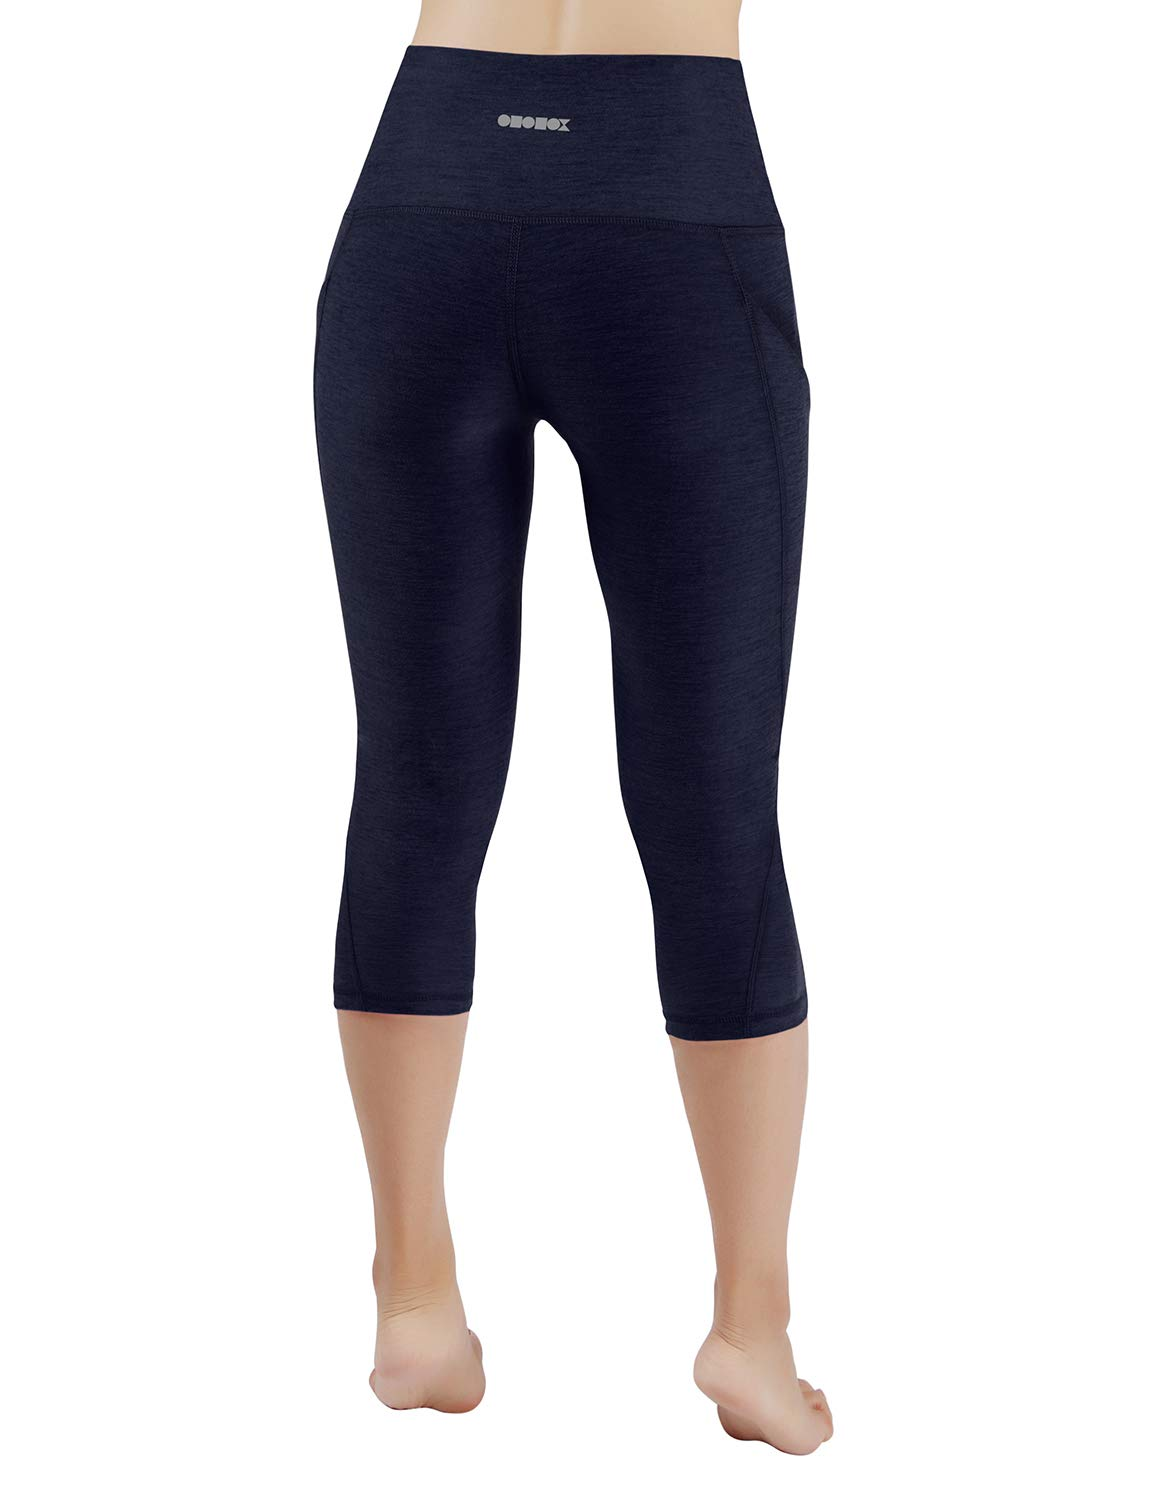 ODODOS High Waist Out Pocket Yoga Capris Pants Tummy Control Workout Running 4 Way Stretch Yoga Leggings,Navy,X-Small by ODODOS (Image #3)